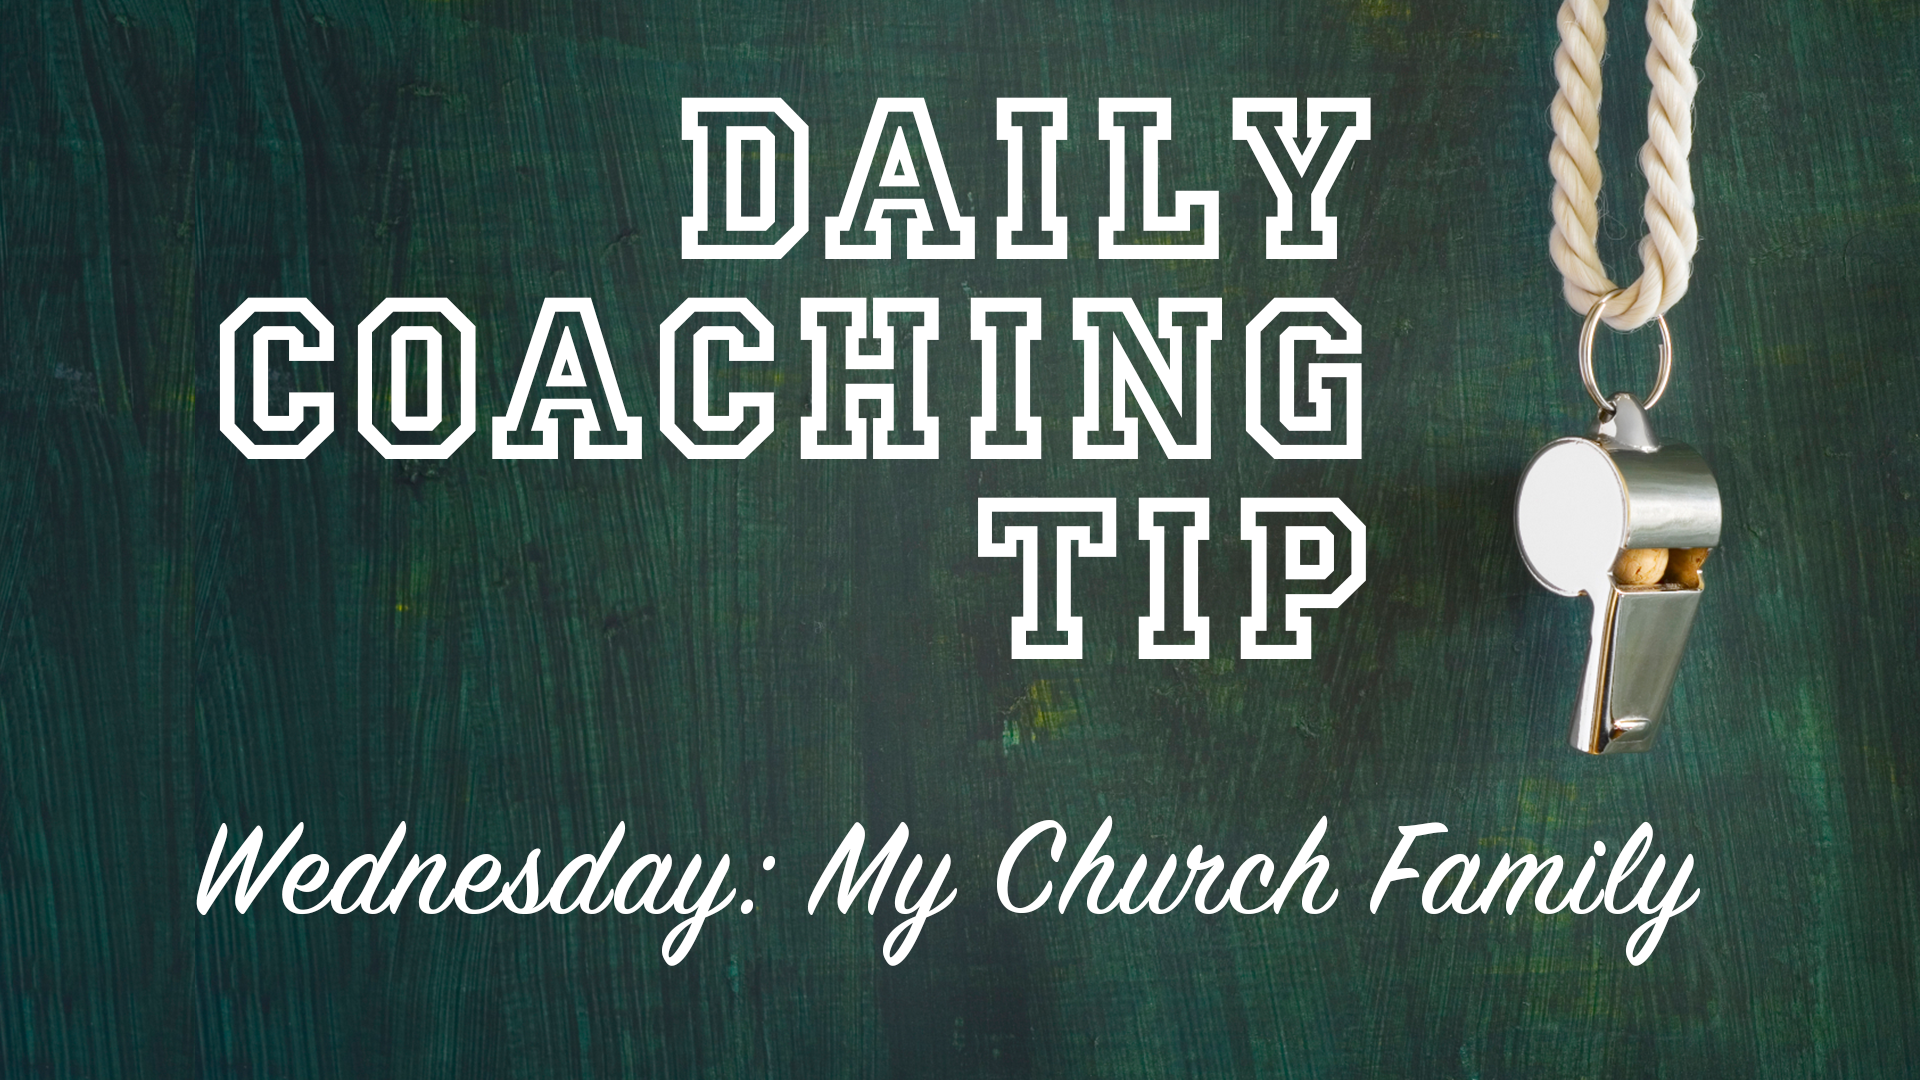 Daily Coaching Video, Wednesday, April 13, 2016